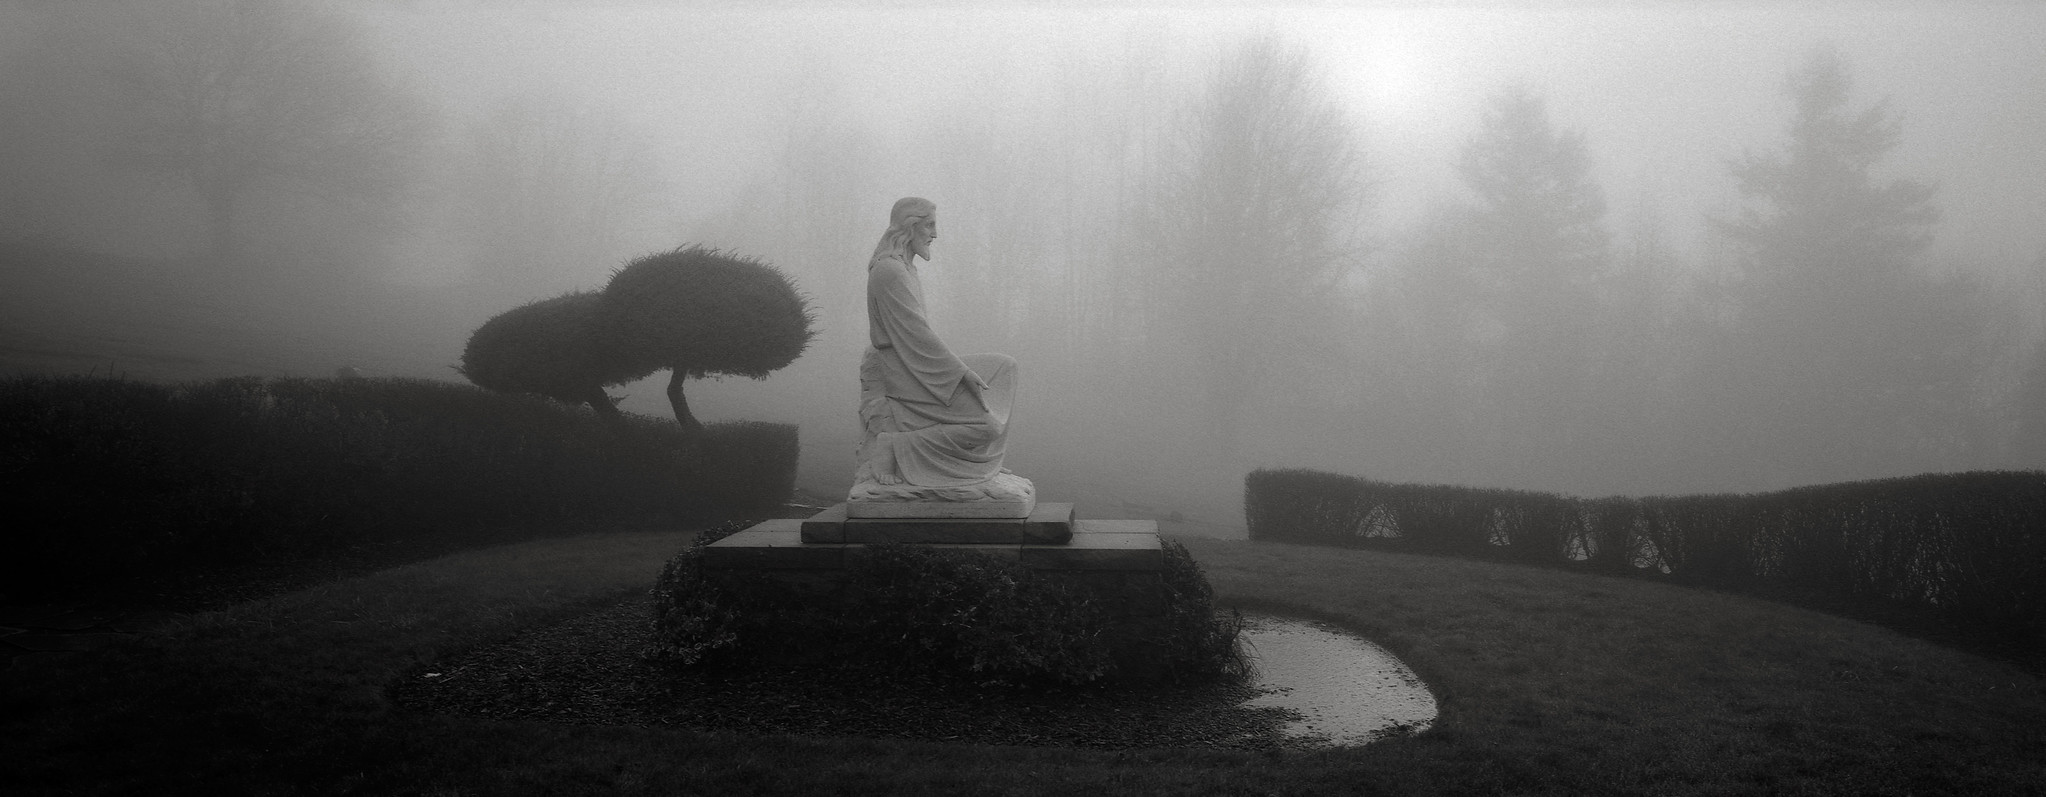 Jesus in the Fog, Portland